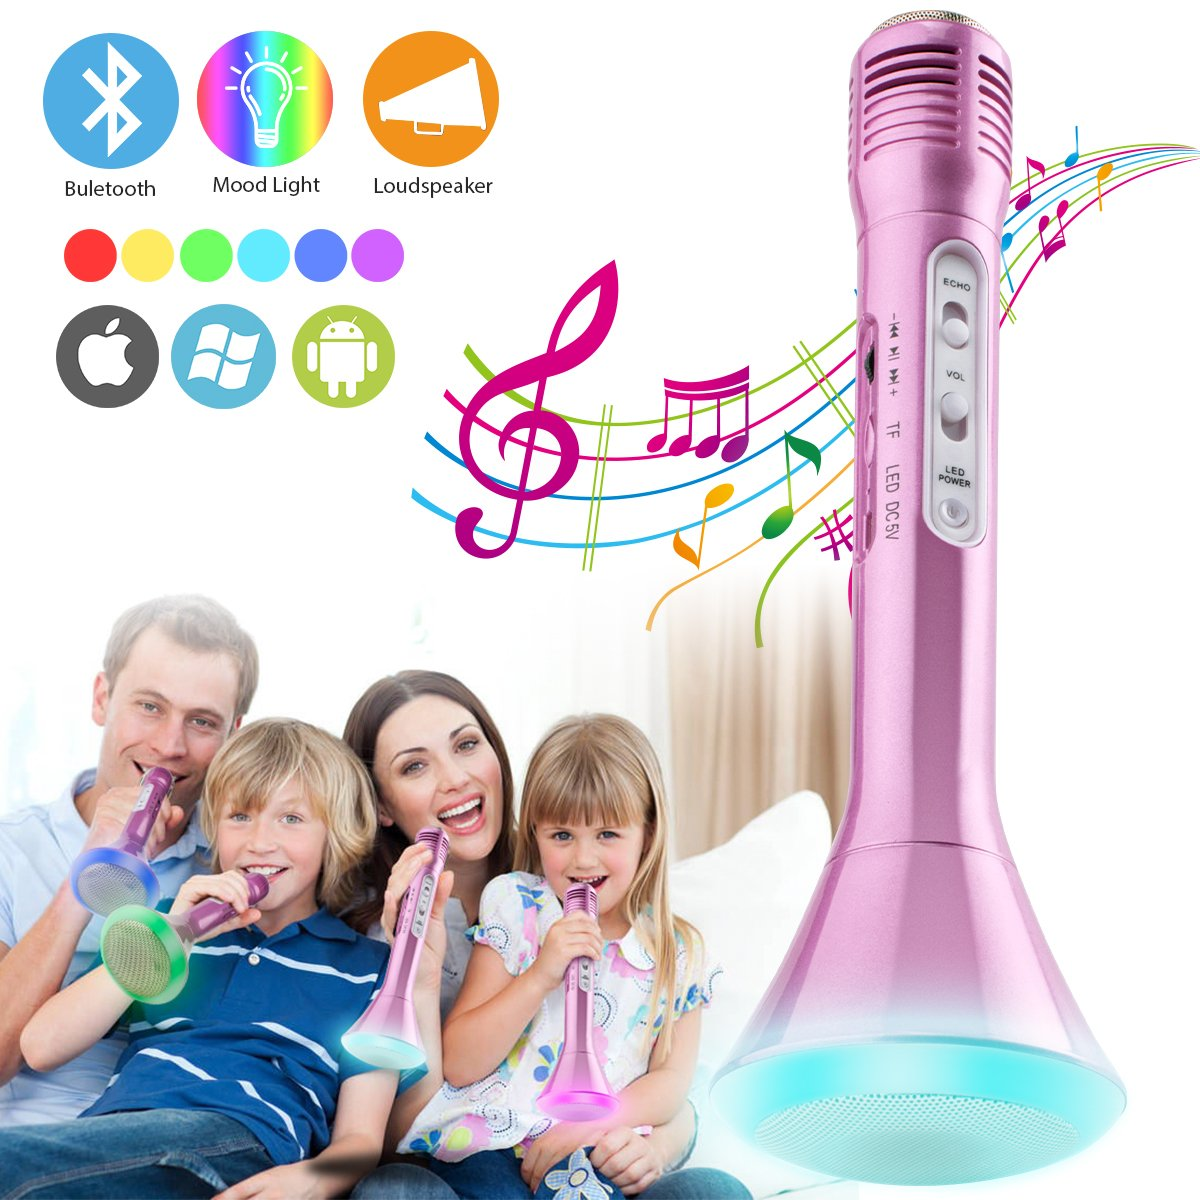 Wireless Kids Karaoke Microphone with Bluetooth Speaker, Portable Handheld Karaoke Player for Home Party KTV Music Singing Playing, Support iPhone Android IOS Smartphone PC iPad (Pink)